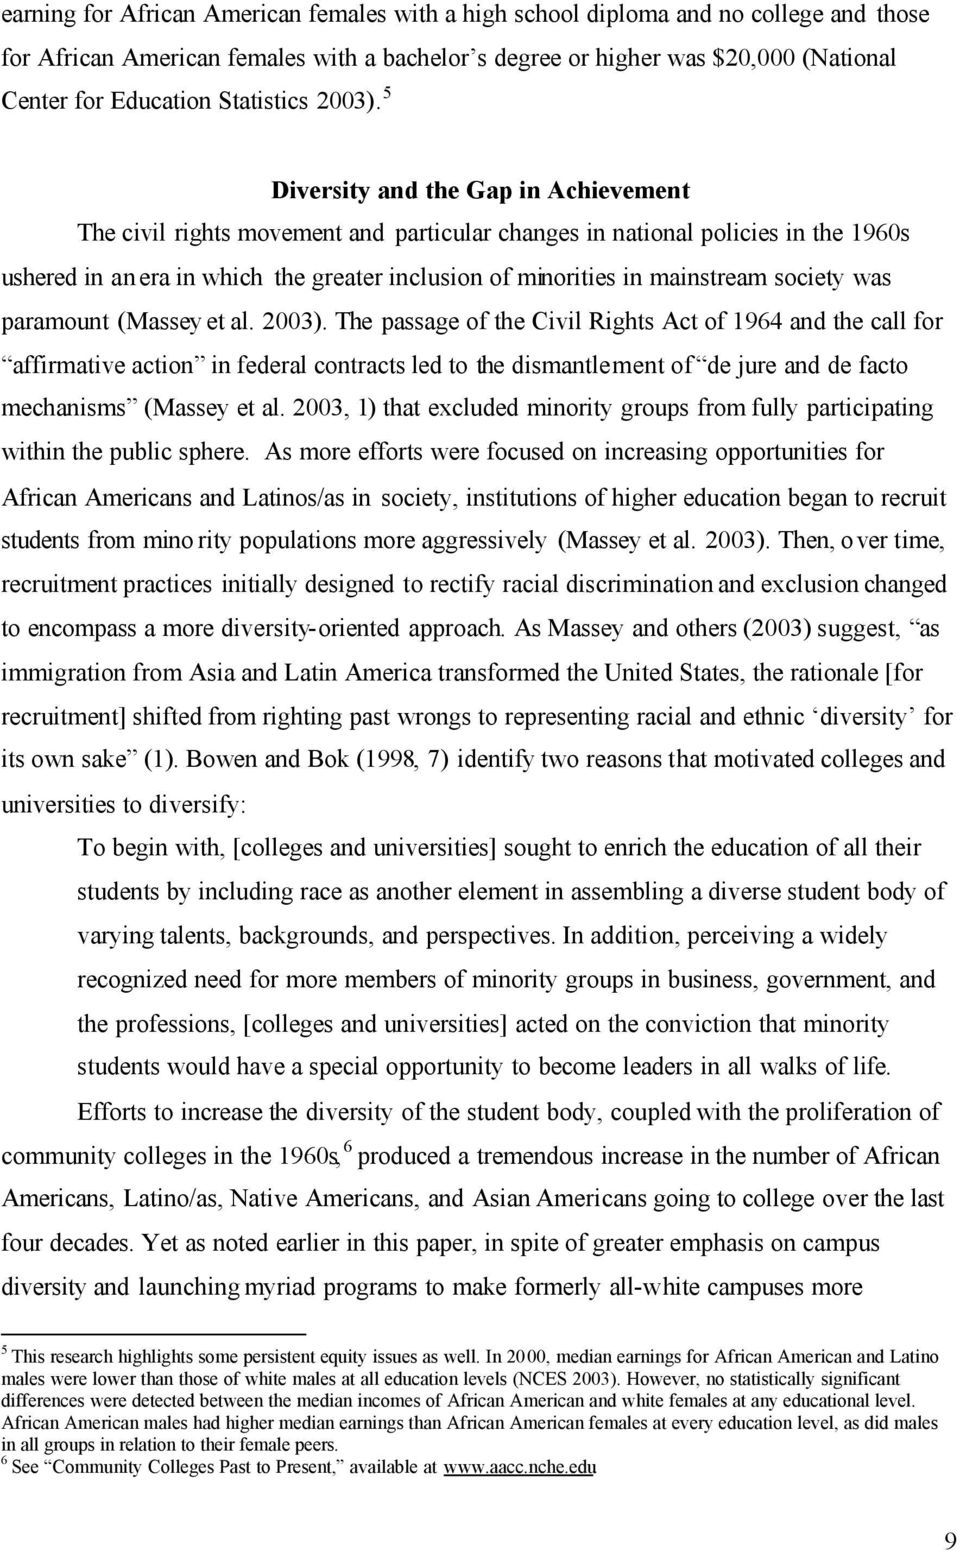 5 Diversity and the Gap in Achievement The civil rights movement and particular changes in national policies in the 1960s ushered in an era in which the greater inclusion of minorities in mainstream